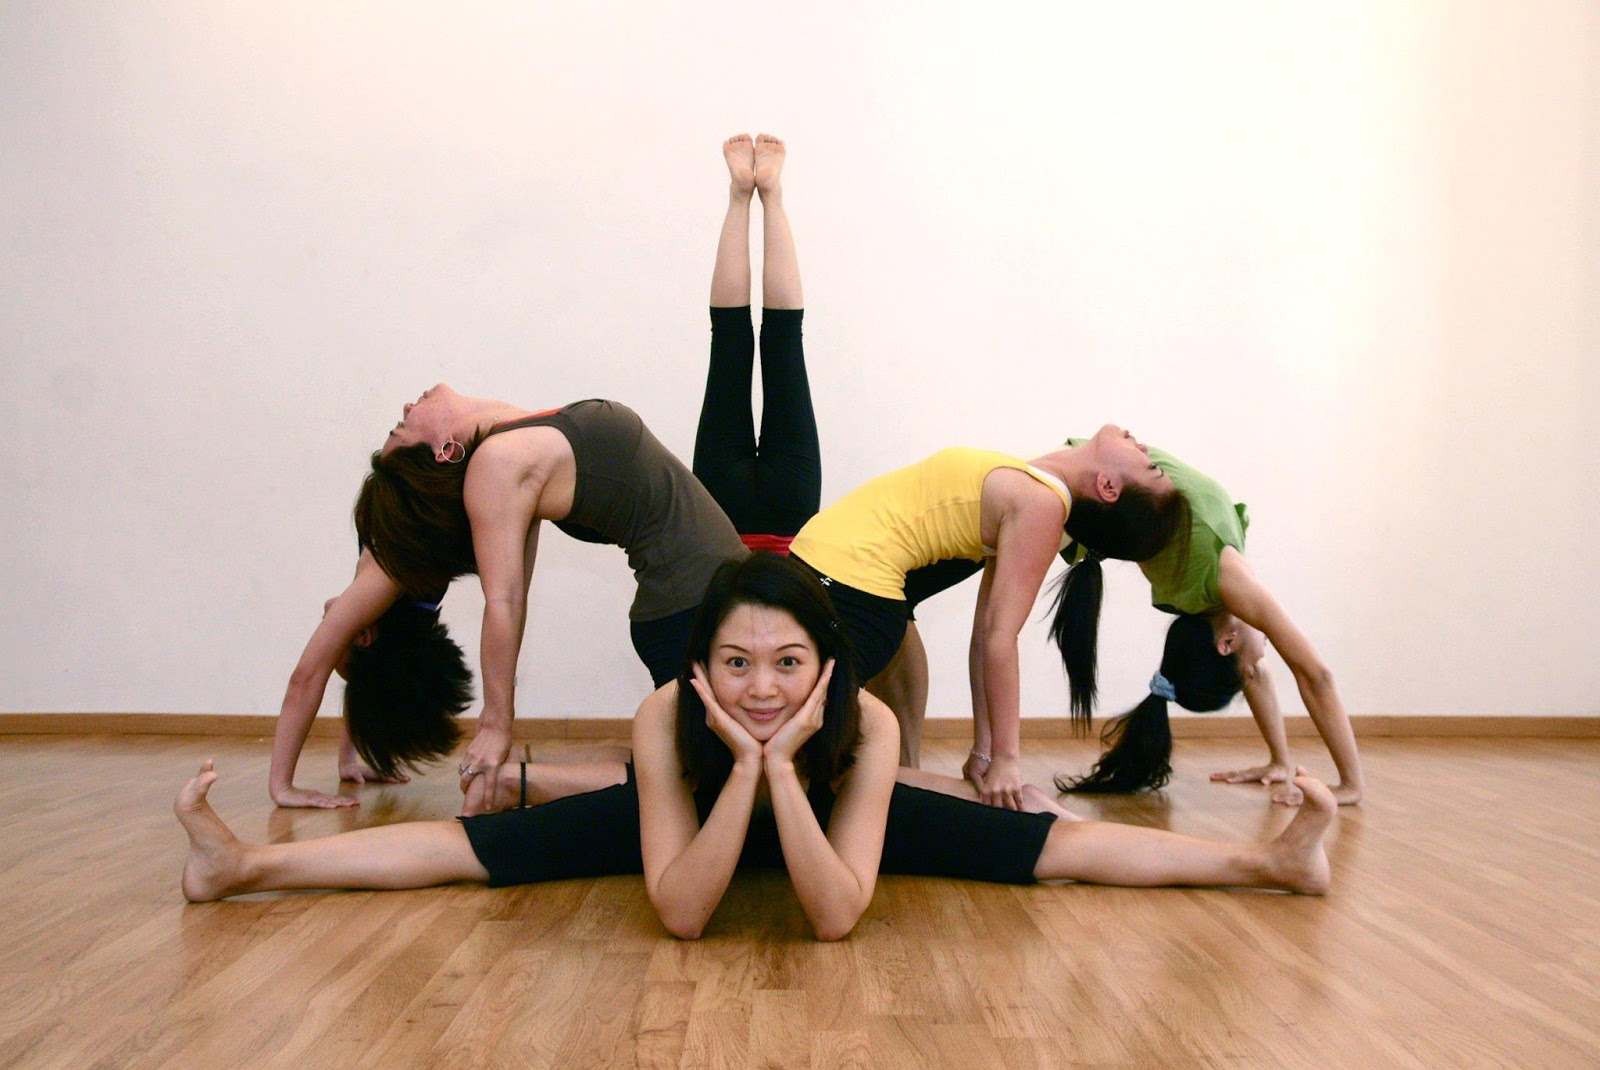 How can yoga help women with breast cancer? 1